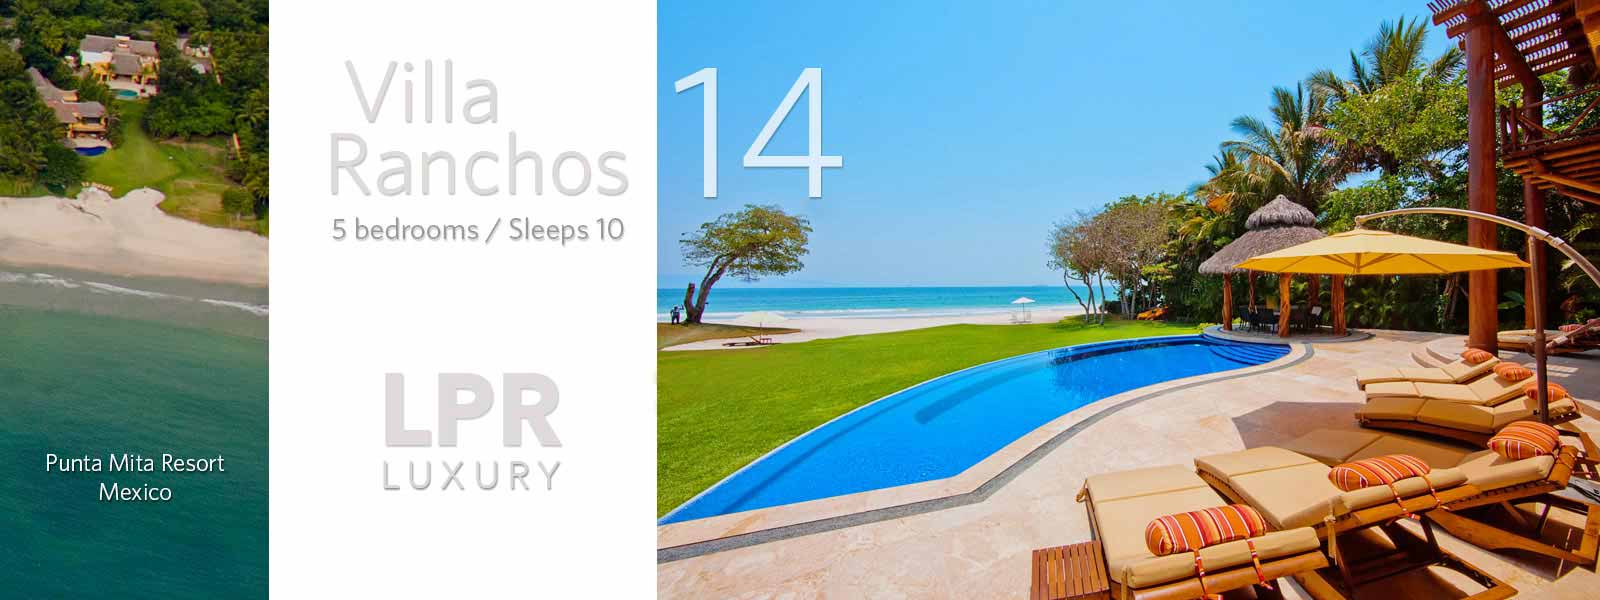 Villa Ranchos 14 - Luxury Punta Mita Real Estate and Vacation Villa Rentals